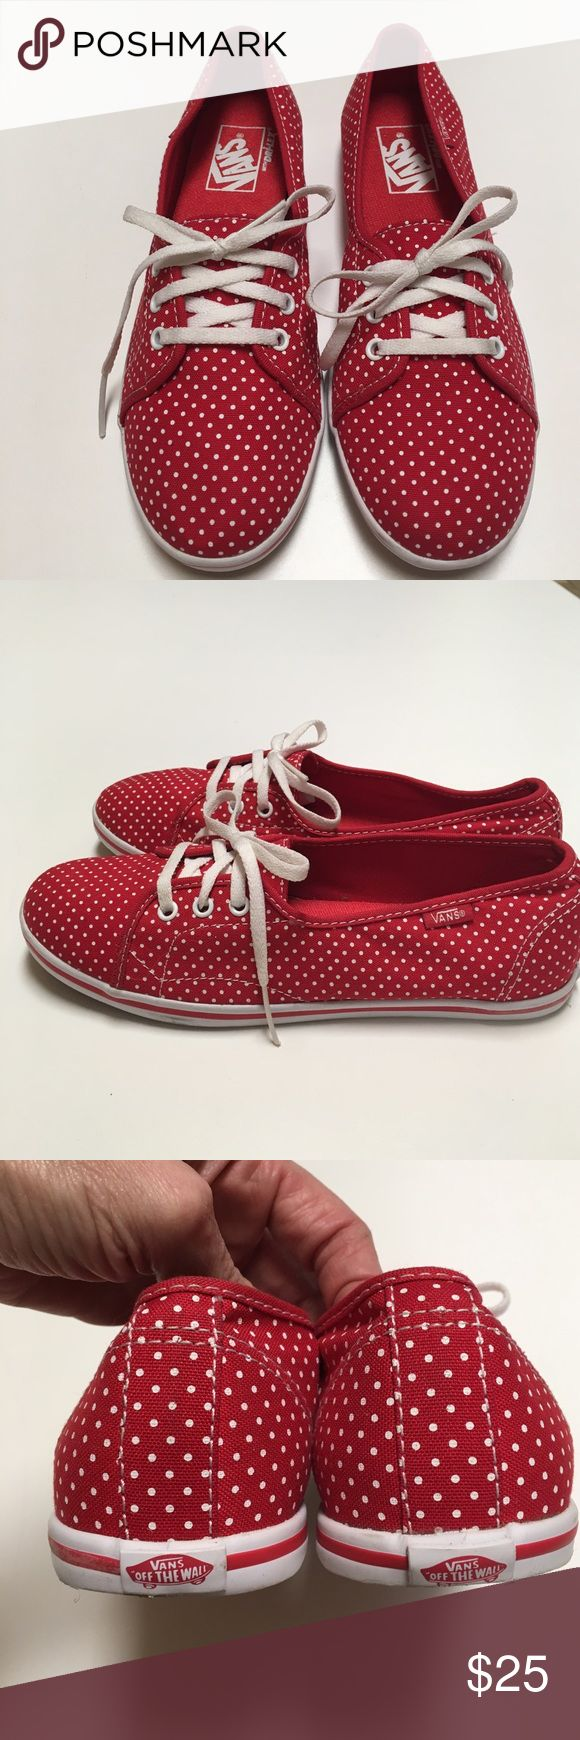 Vans LEAH Red polka dot sneakers Size 7 These have only been worn once. Very nice condition. Red with white polka dots. Marks ladies size 7. Please know how you fit in this brand. These are not my size. FINAL PRICE, for additional discount bundle. Vans Shoes Sneakers